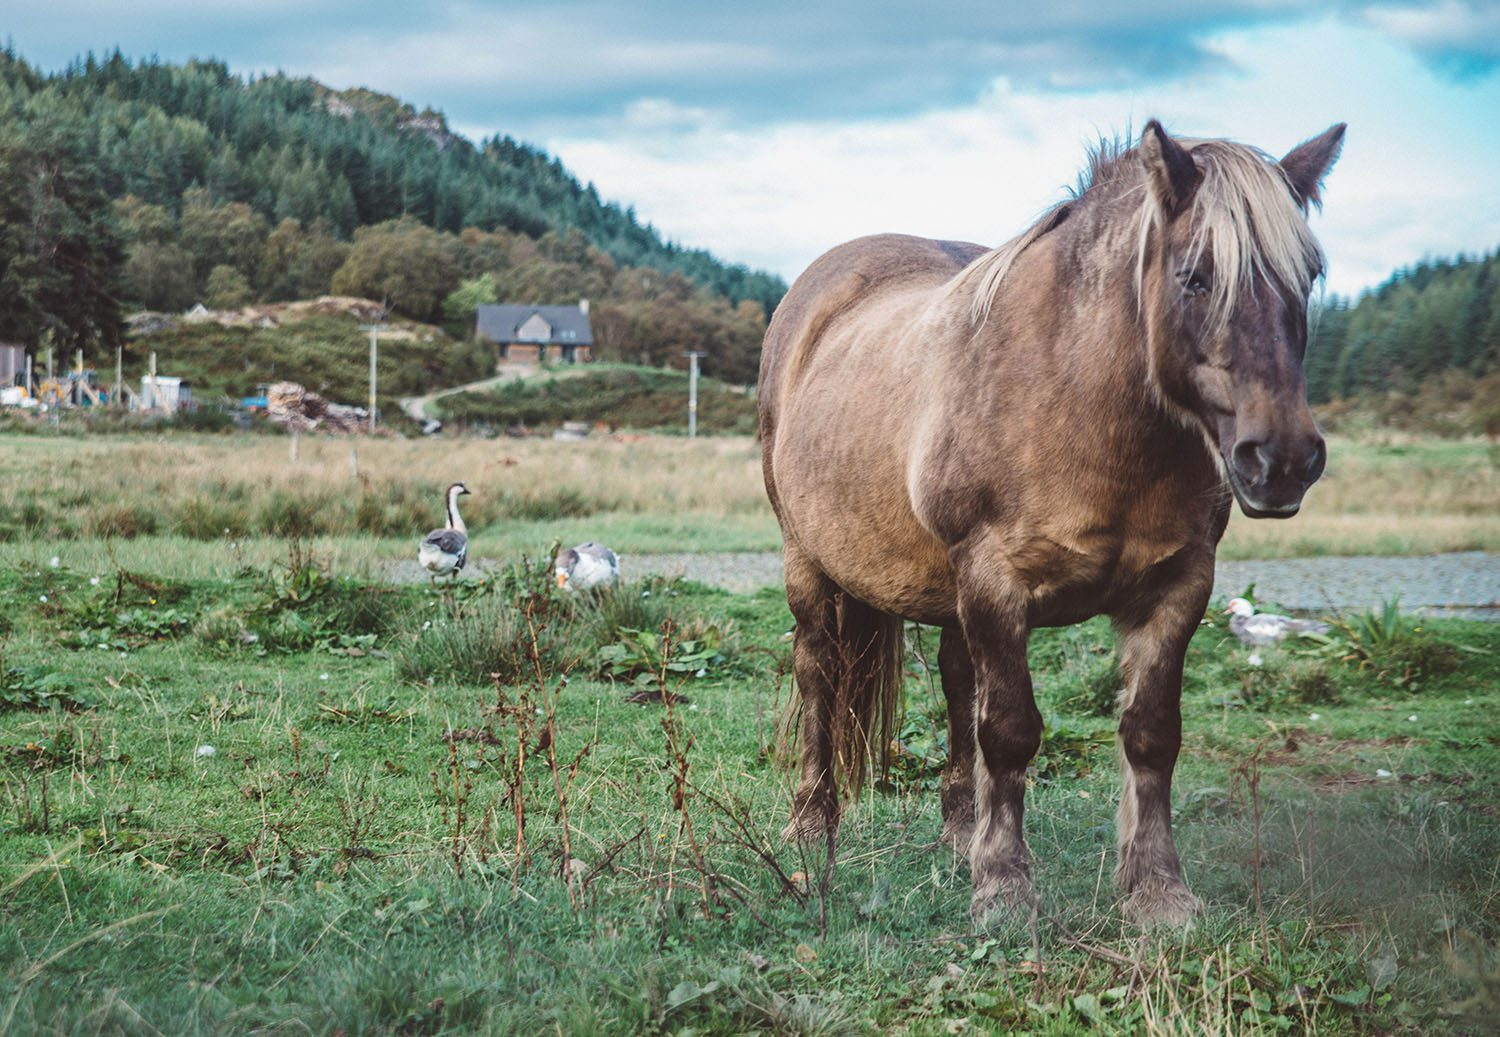 Horse with scottish scenery in the background